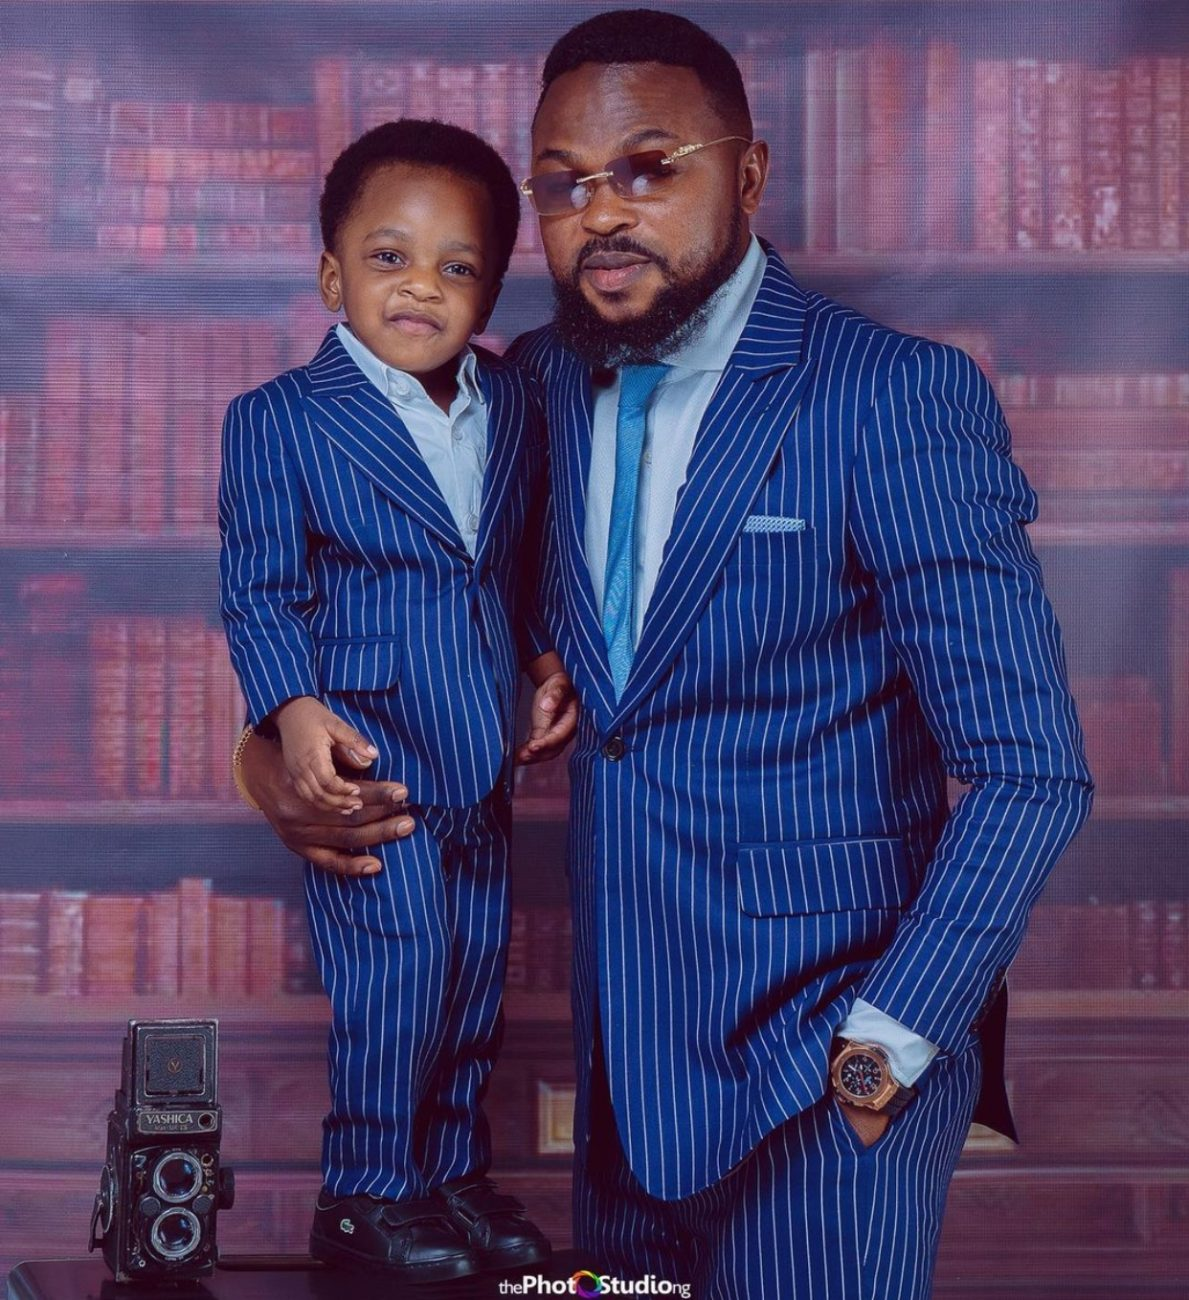 Toyin Abraham blesses the internet shares more photos of Ire on 2nd birthday